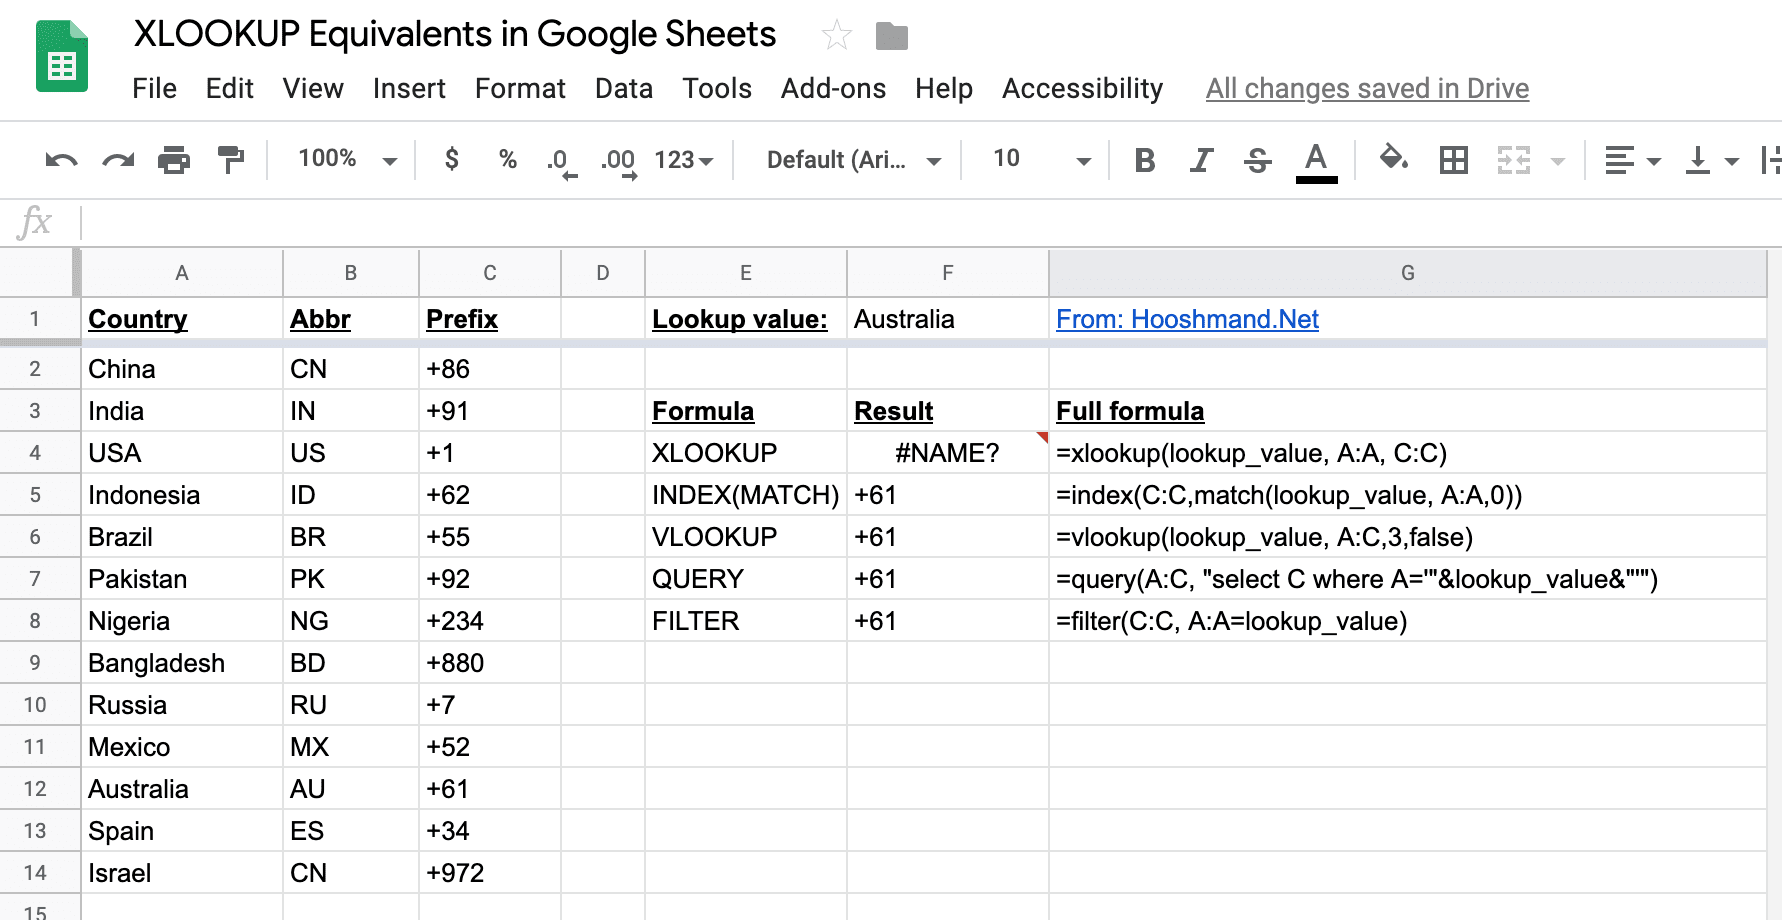 Google Sheets - XLOOKUP equivalents demonstrated